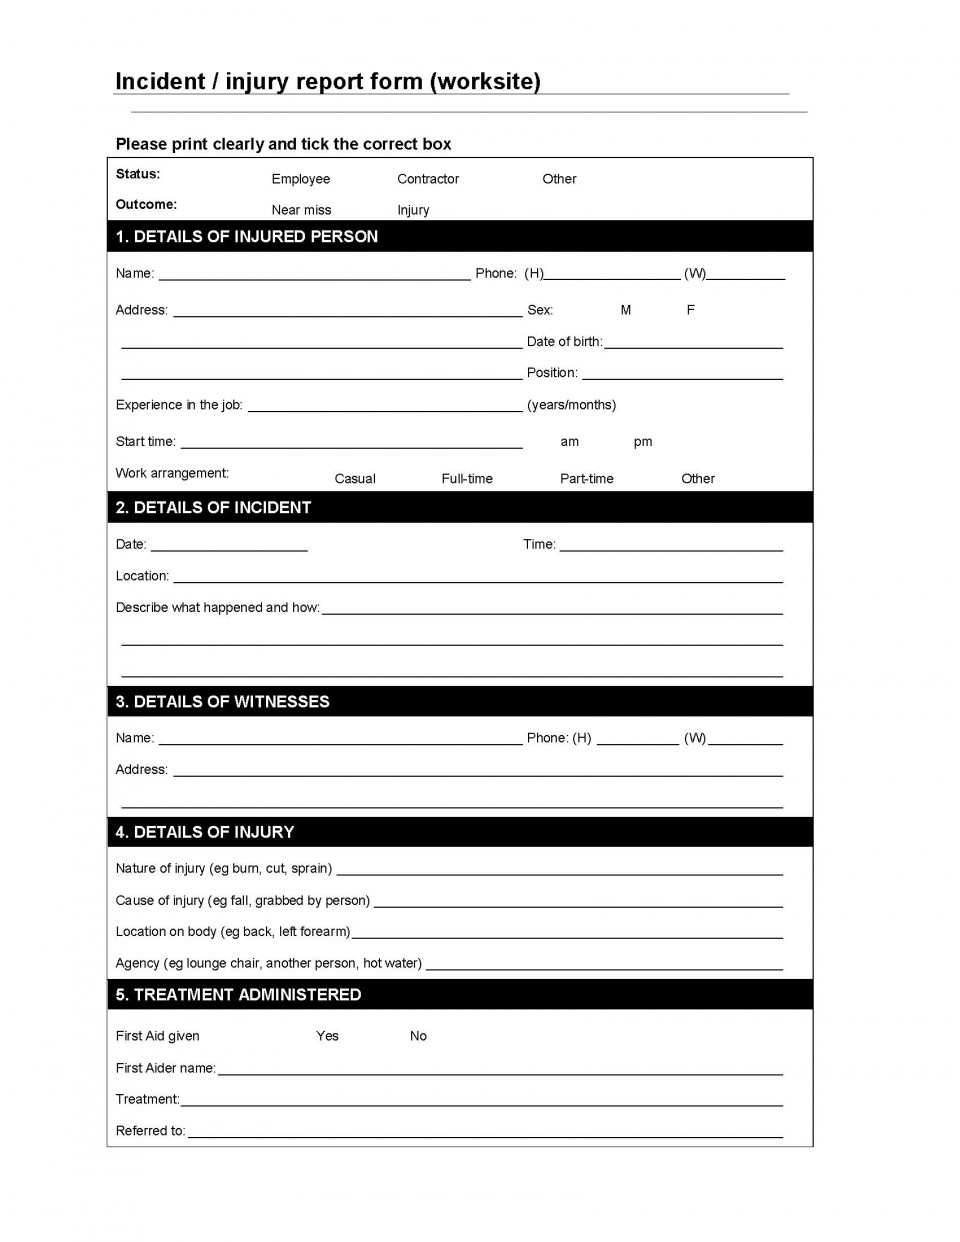 003 Marvelou Workplace Injury Report Form Template Ontario Sample 960